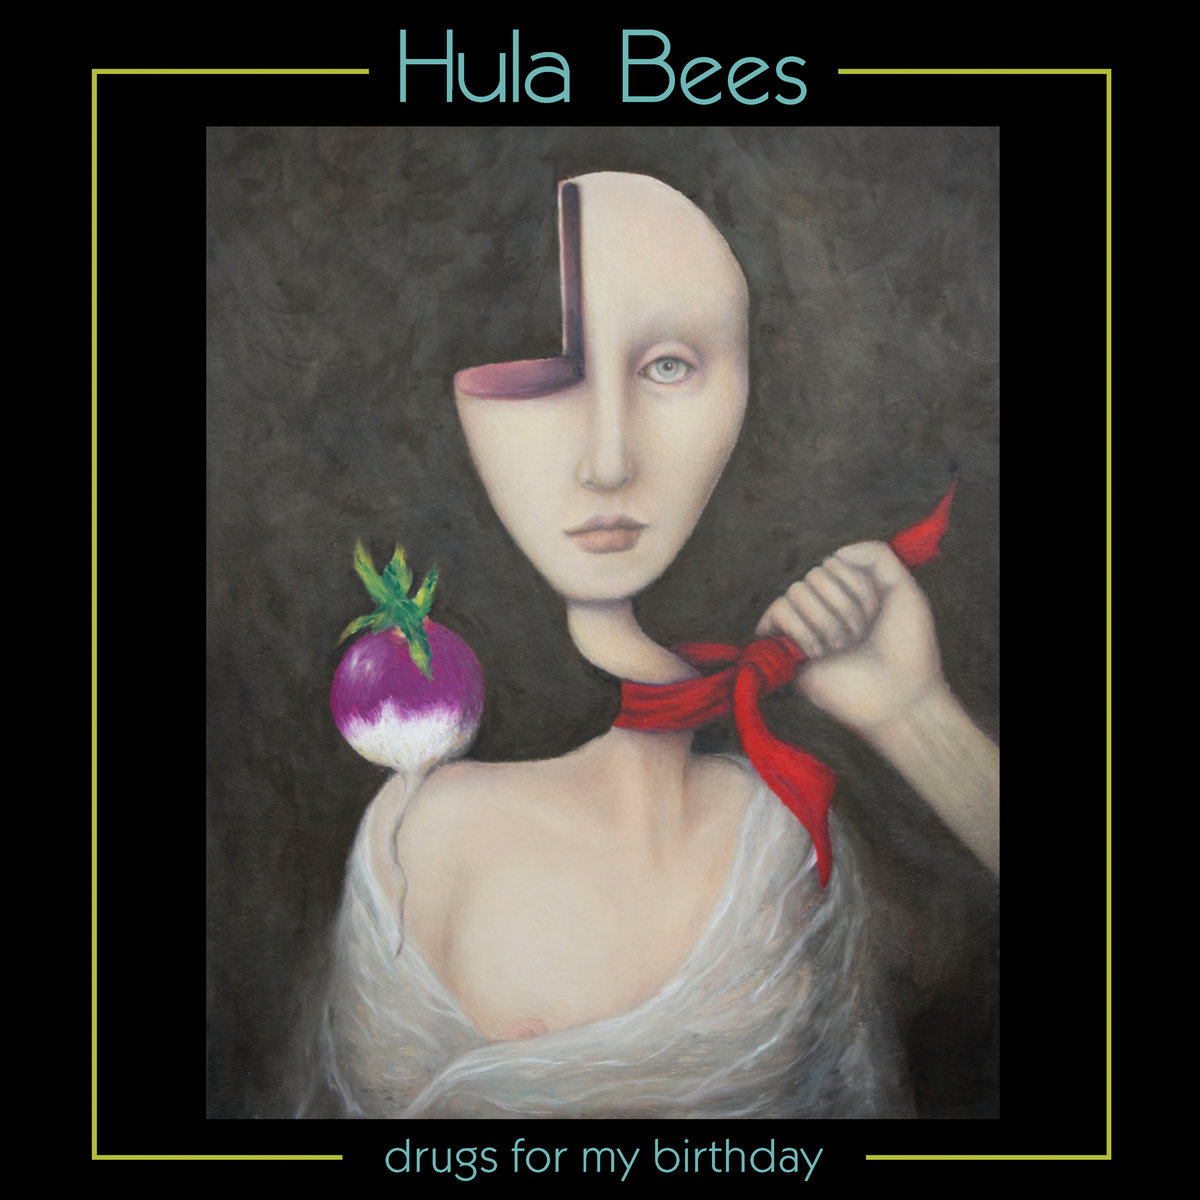 Hula Bees - Drugs For My Birthday